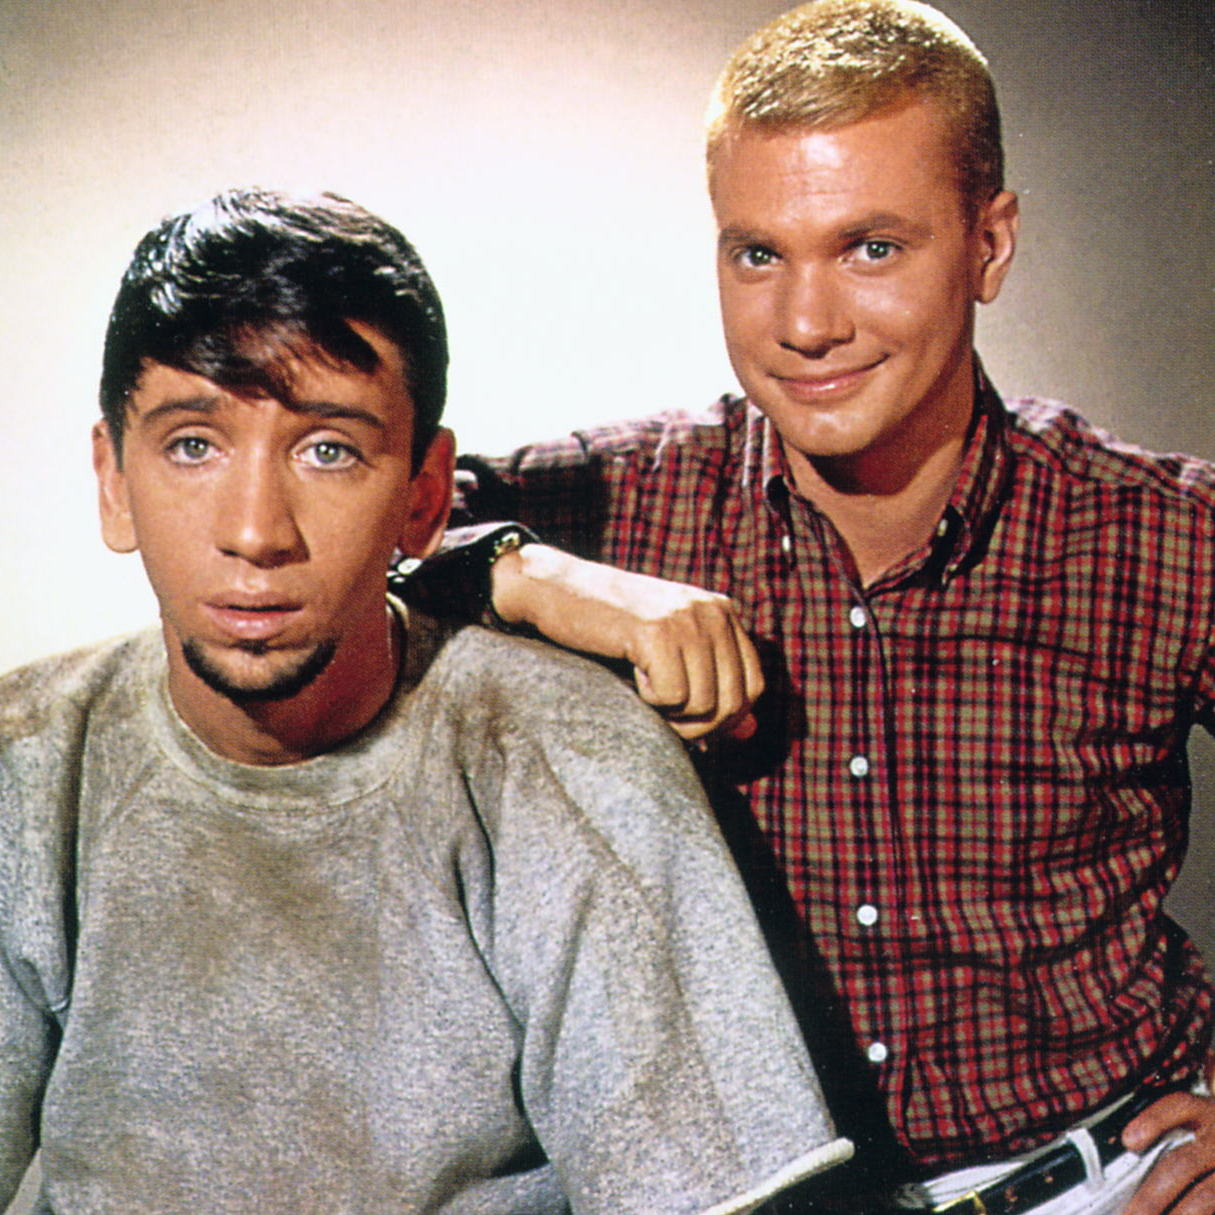 The Many Loves of Dobie Gillis is the first in a straight line of teen comedies from the teen point of view. It starred Dwayne Hickman (right) as Dobie and Bob Denver as his best friend, Maynard.